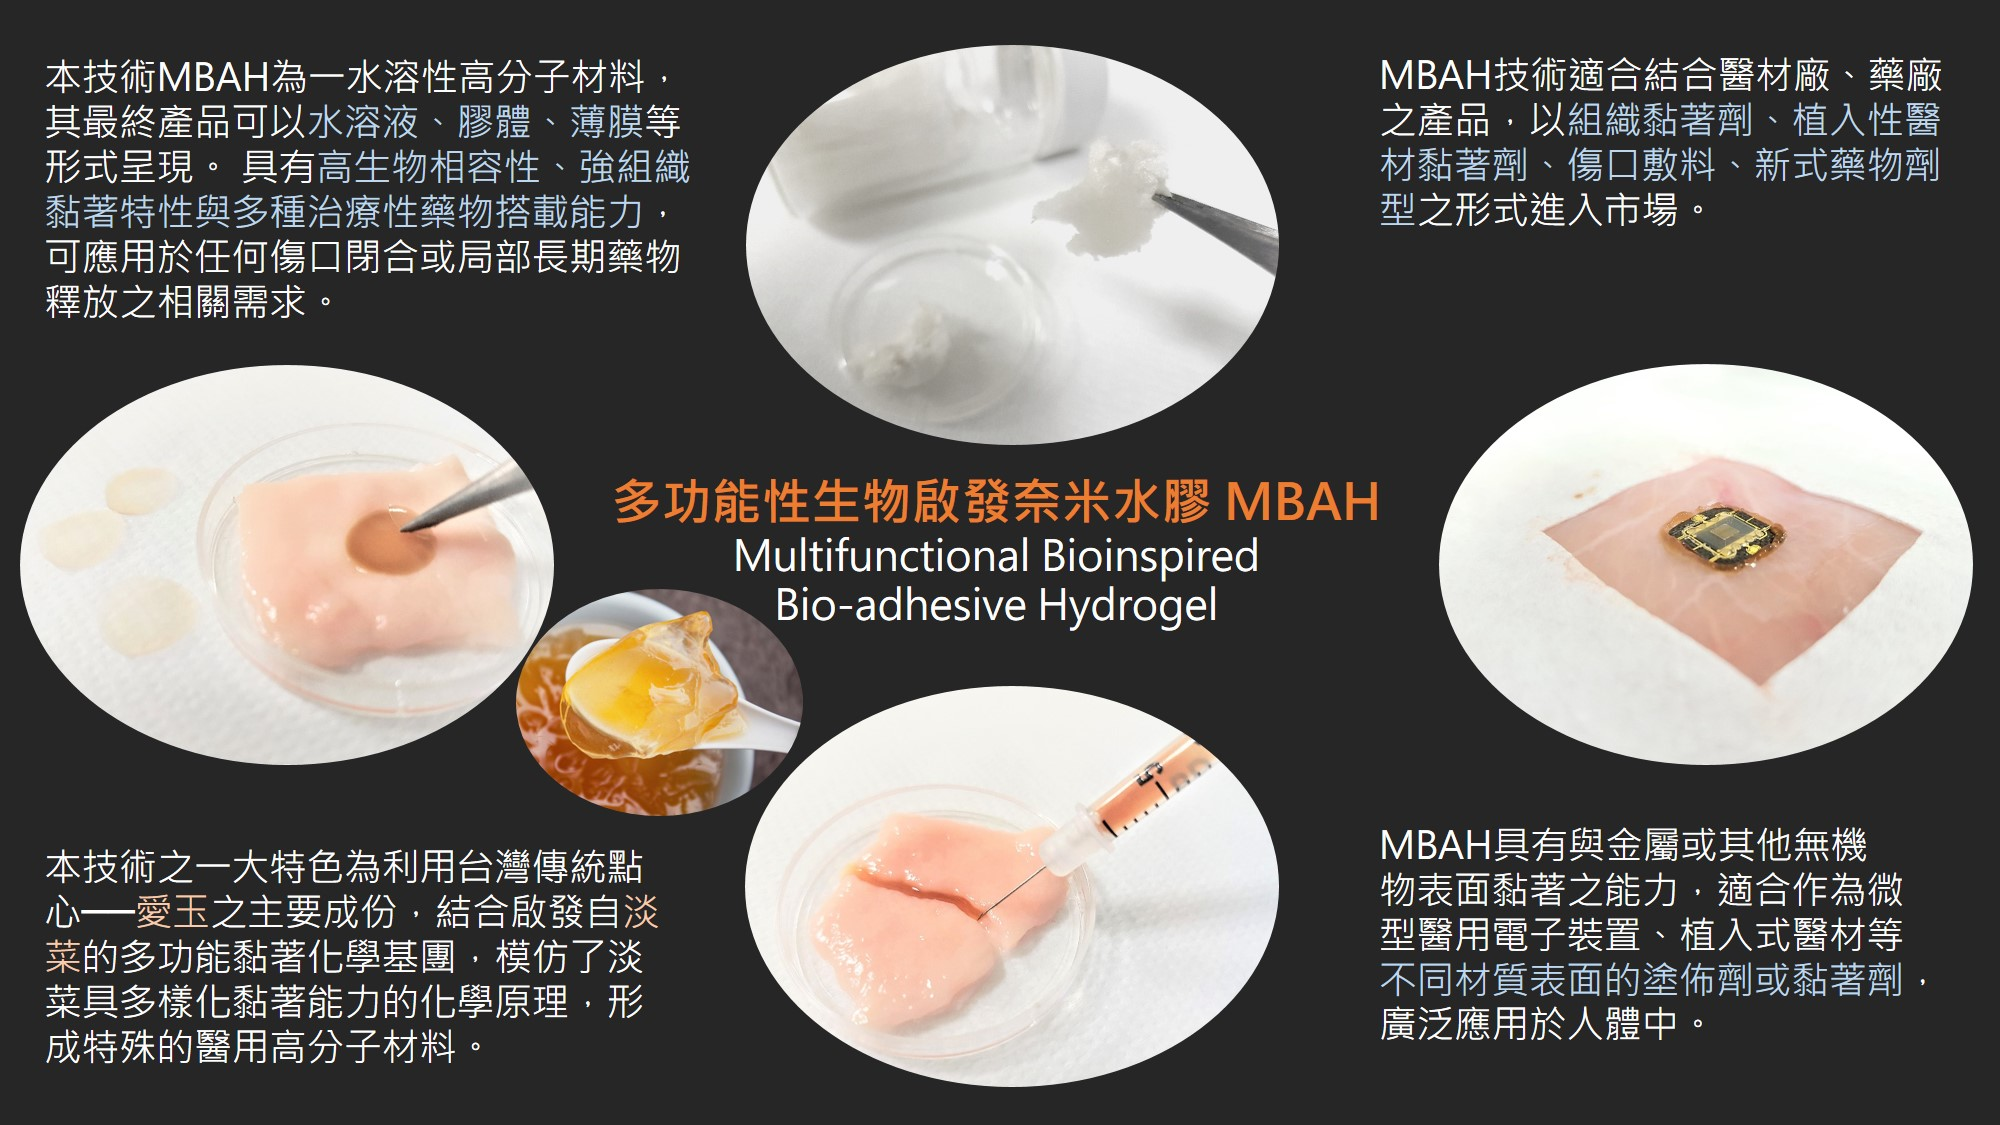 Multifunctional Bioinspired Bio-adhesive Hydrogel, MBAH